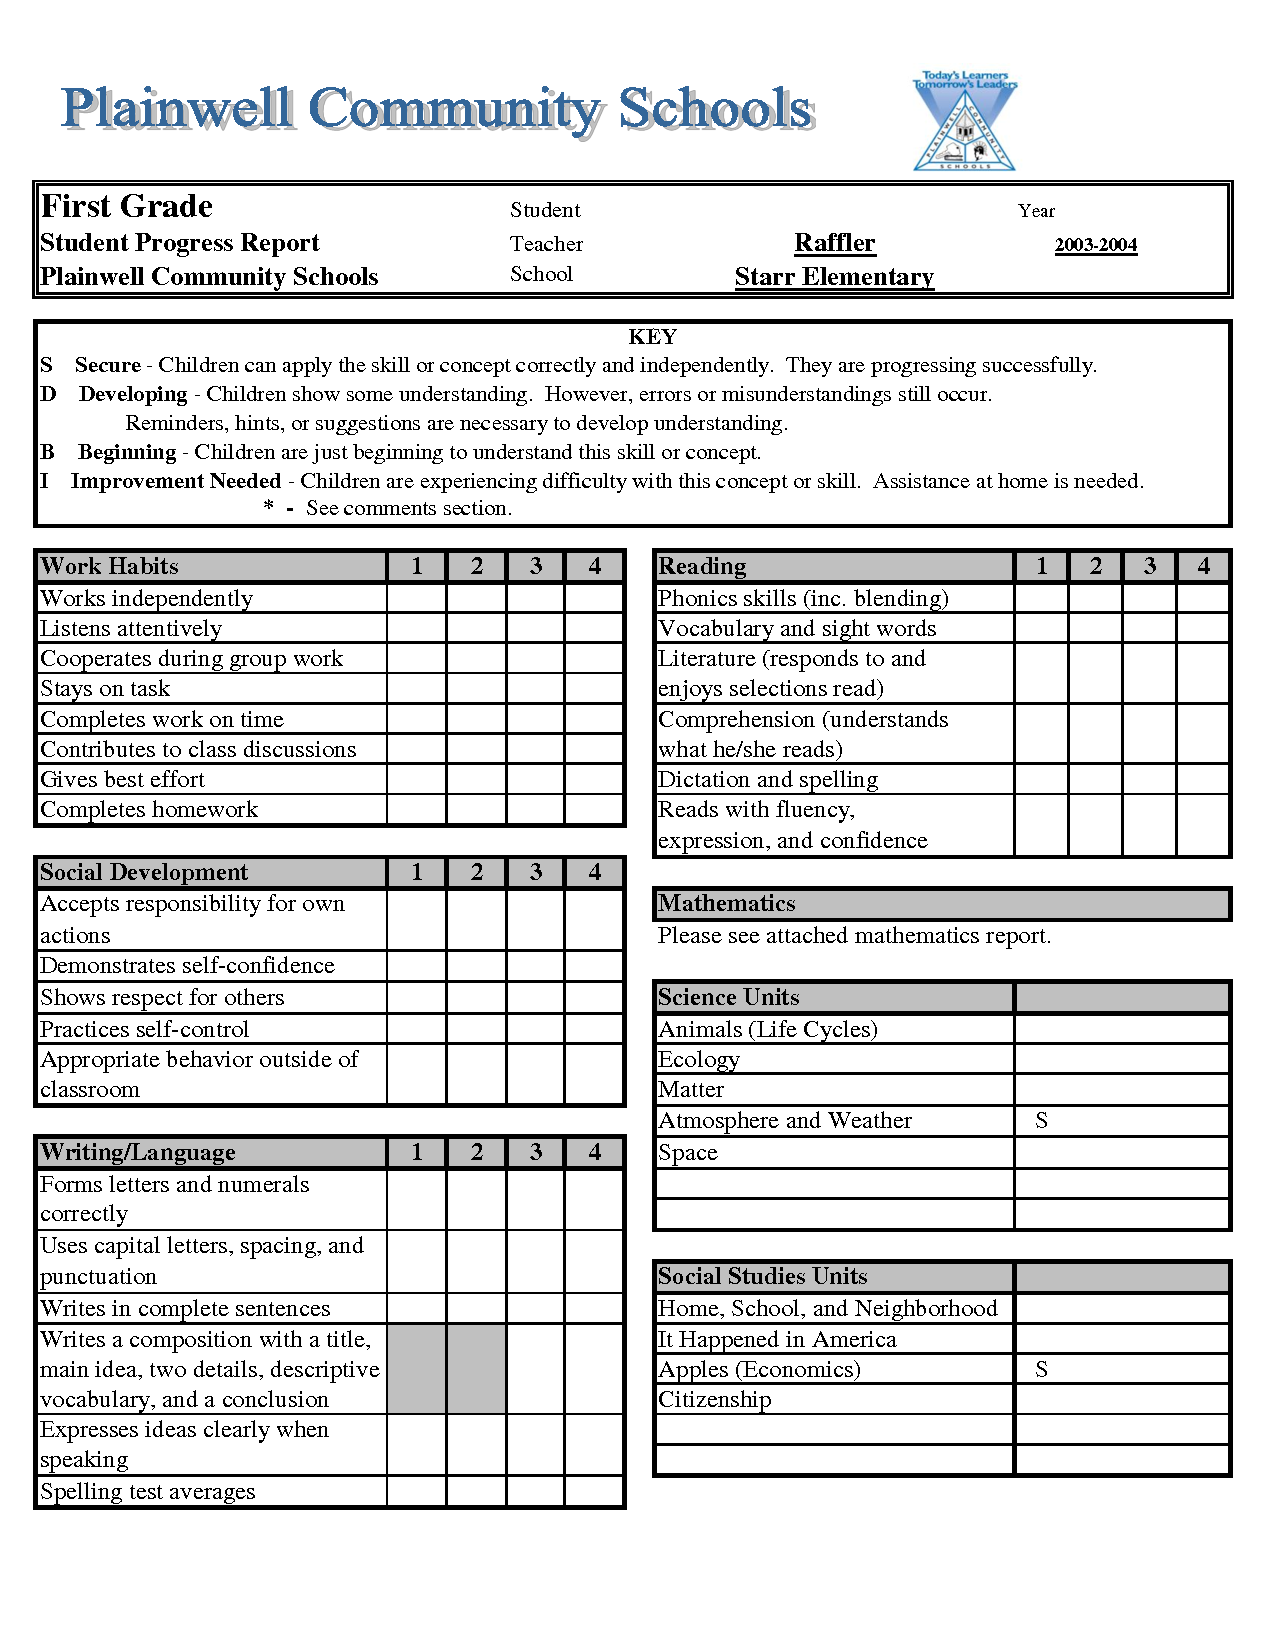 report card template excelxls download legal documents report card template document sample